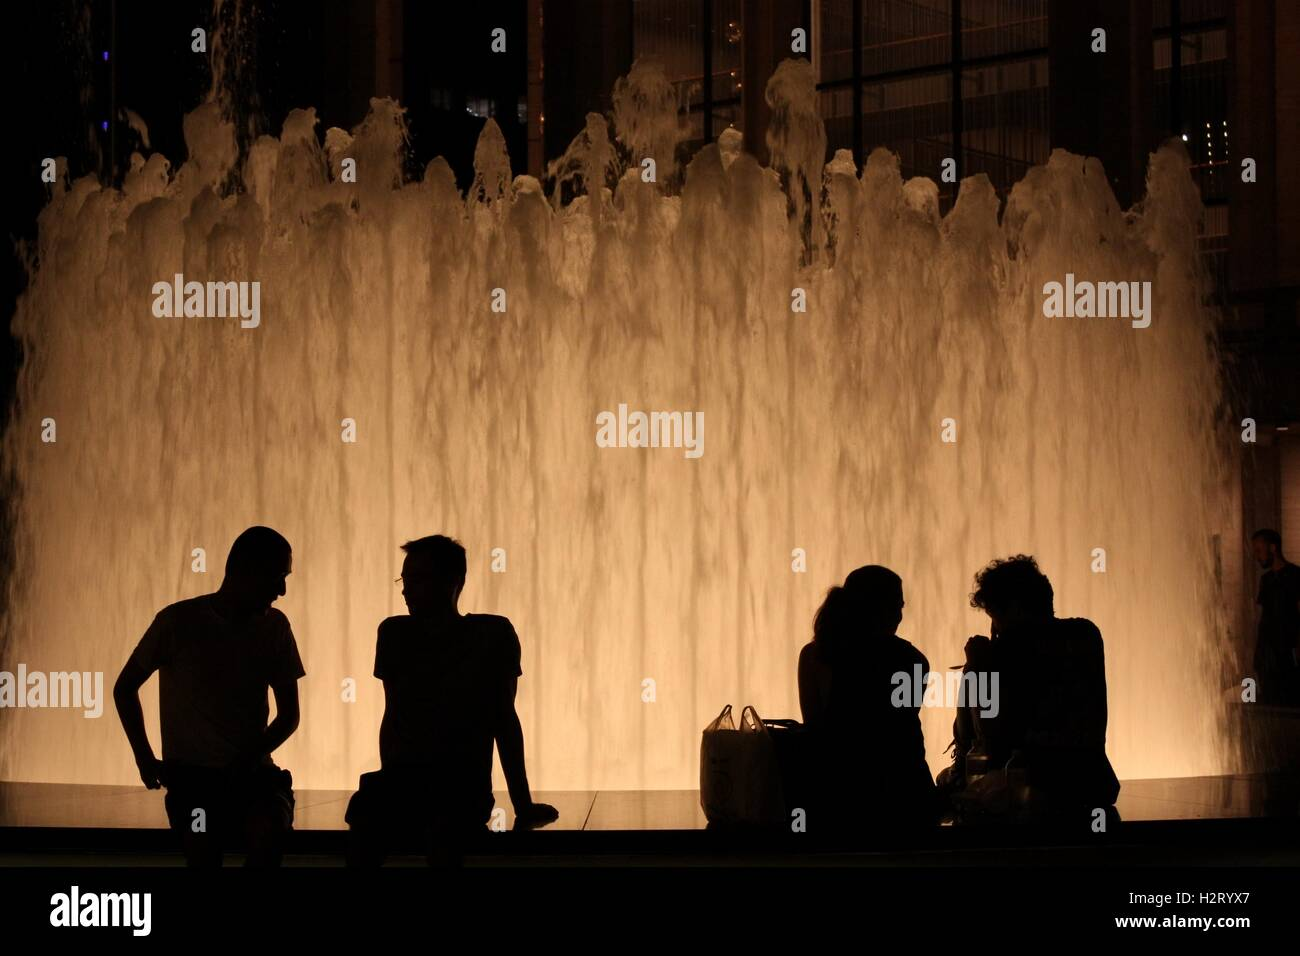 Four human silhouettes seen against illuminated Revson Fountain at Lincoln Center Plaza, New York. - Stock Image